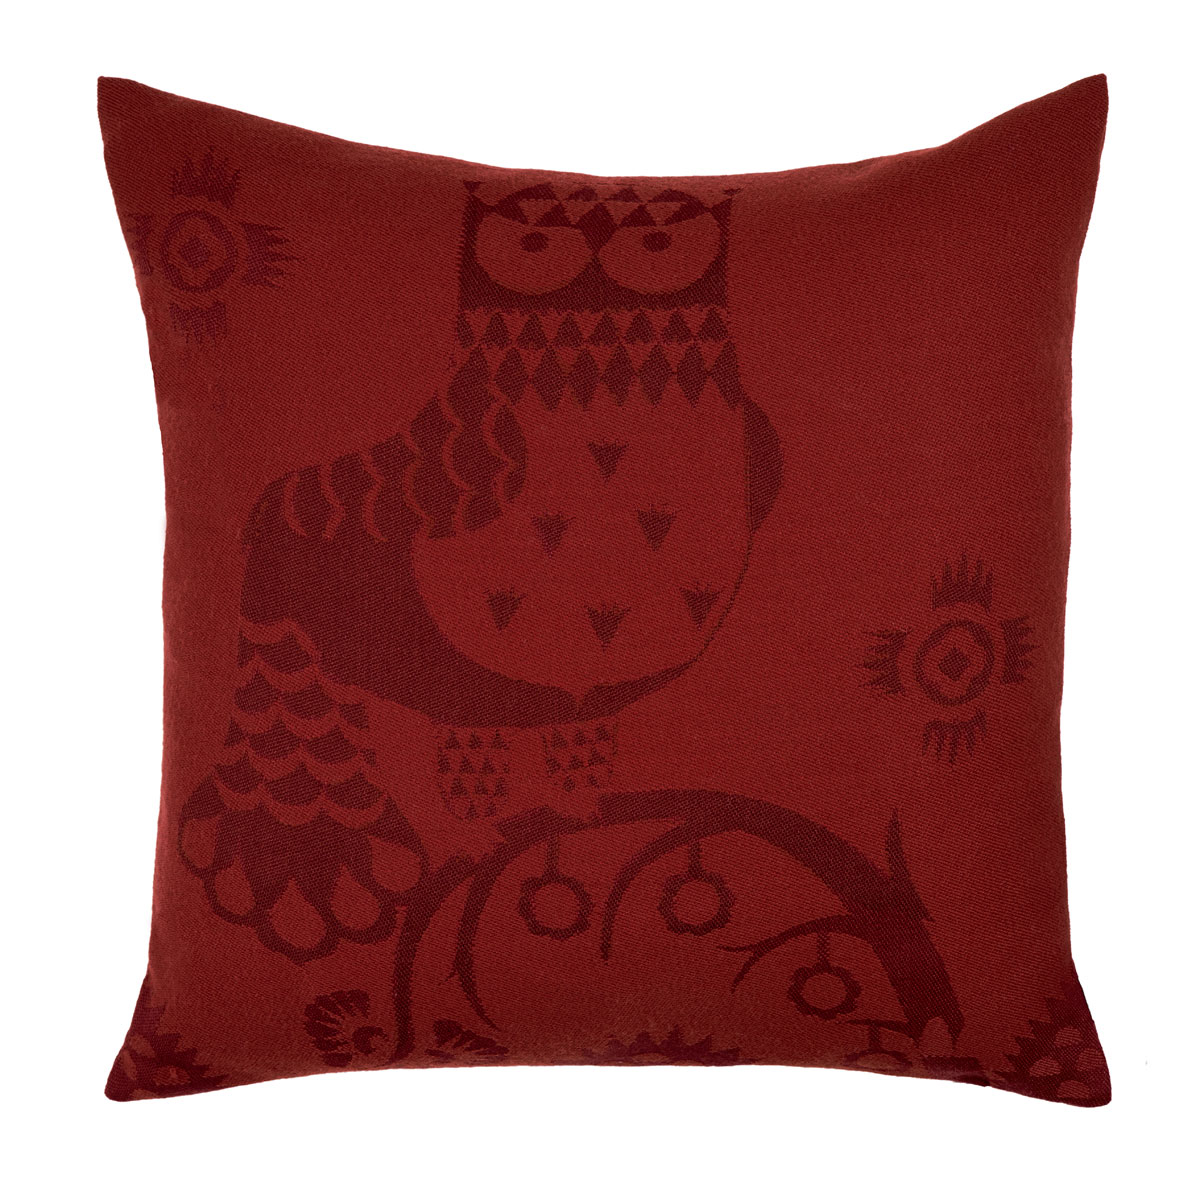 Throw Pillow Red : iittala Taika Red Throw Pillow - Holiday Dcor & Decorations